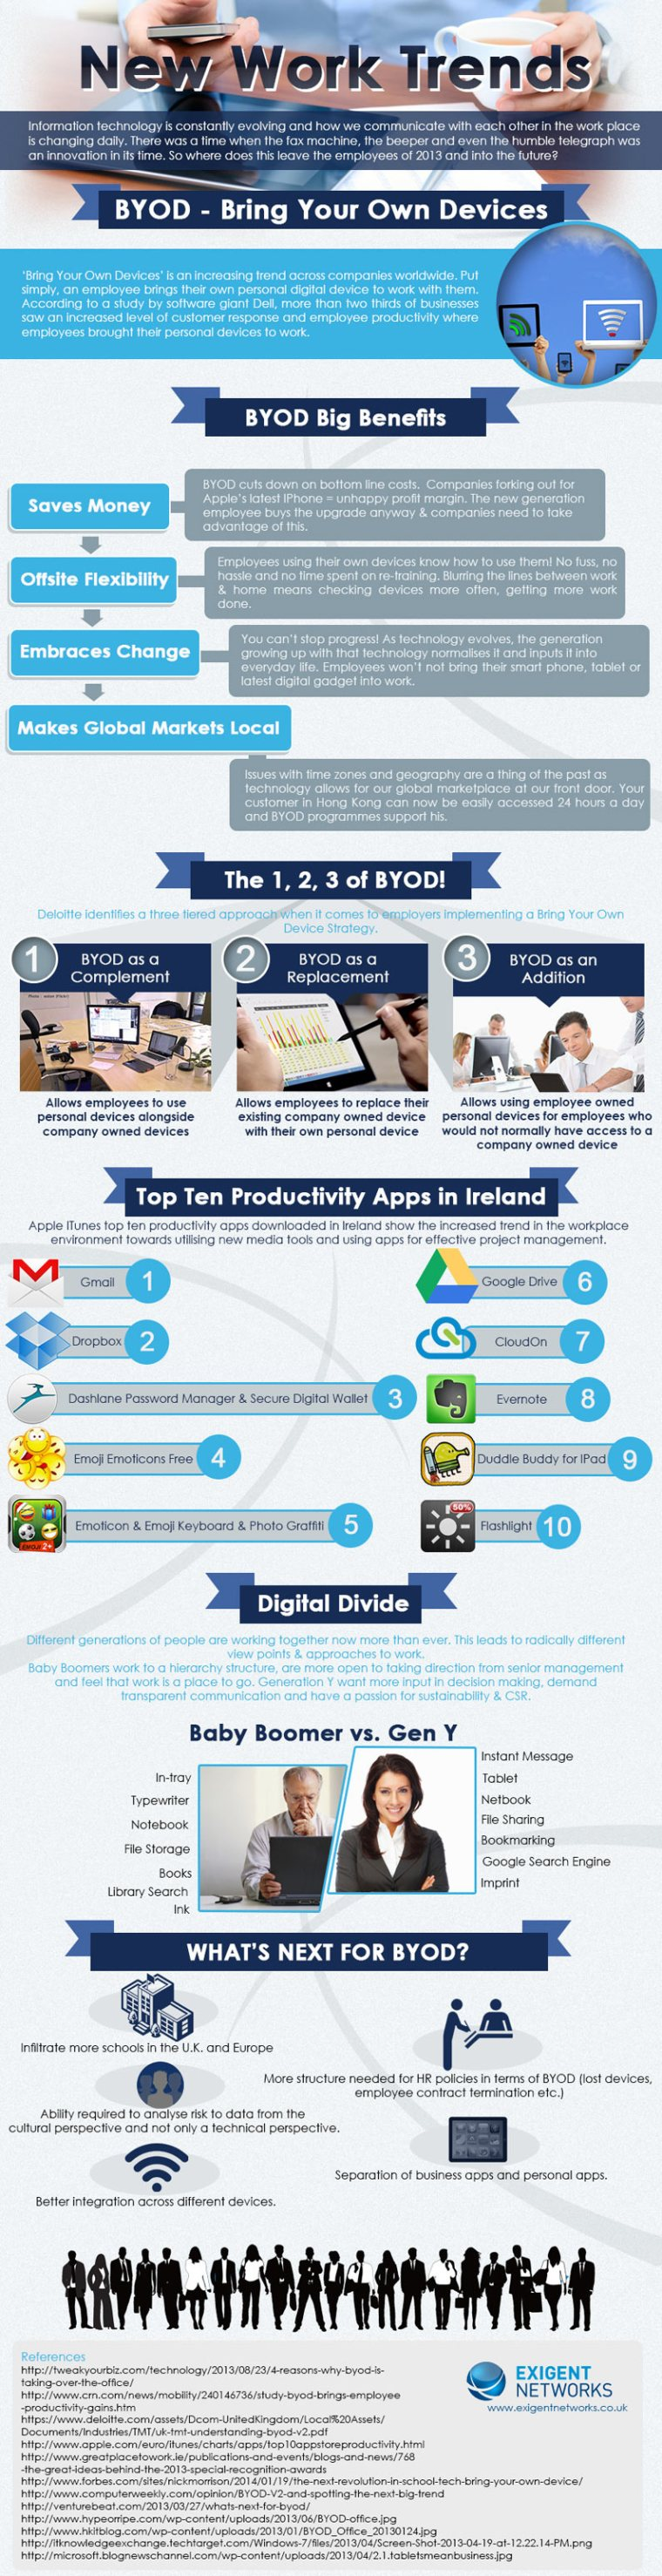 New work trends infographic